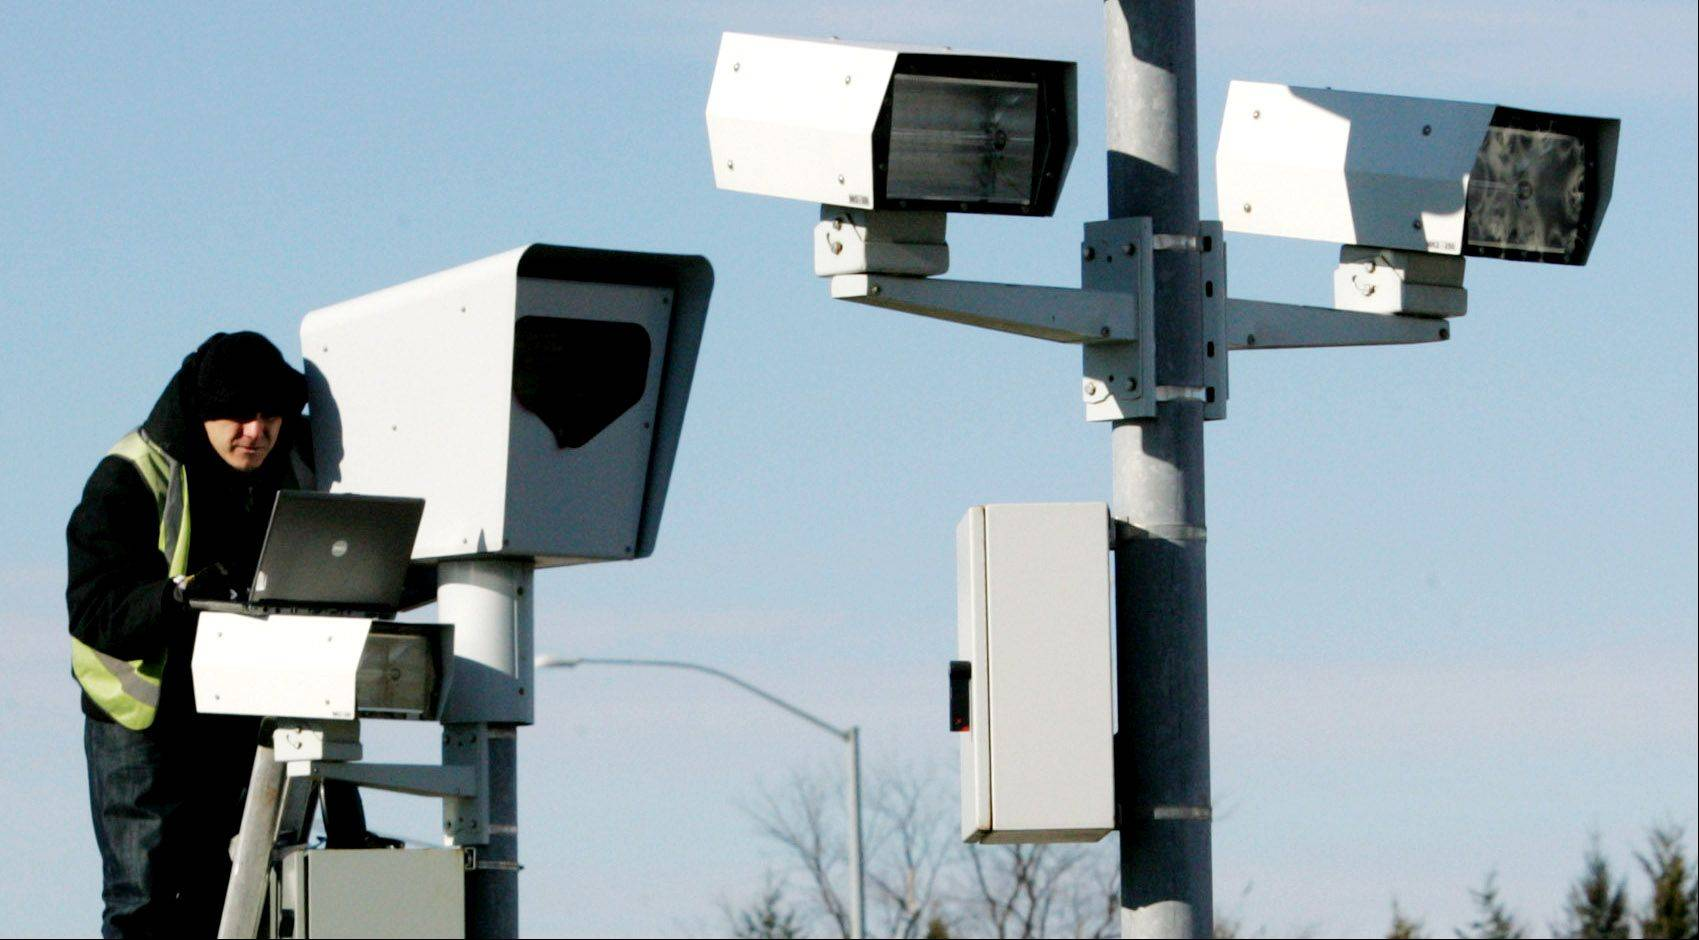 Gurnee's red-light camera intersections include Hunt Club Road and Grand Avenue. The village is owed about $1.5 million in photo enforcement fines and has turned to a state agency's program for assistance to collect the debt.